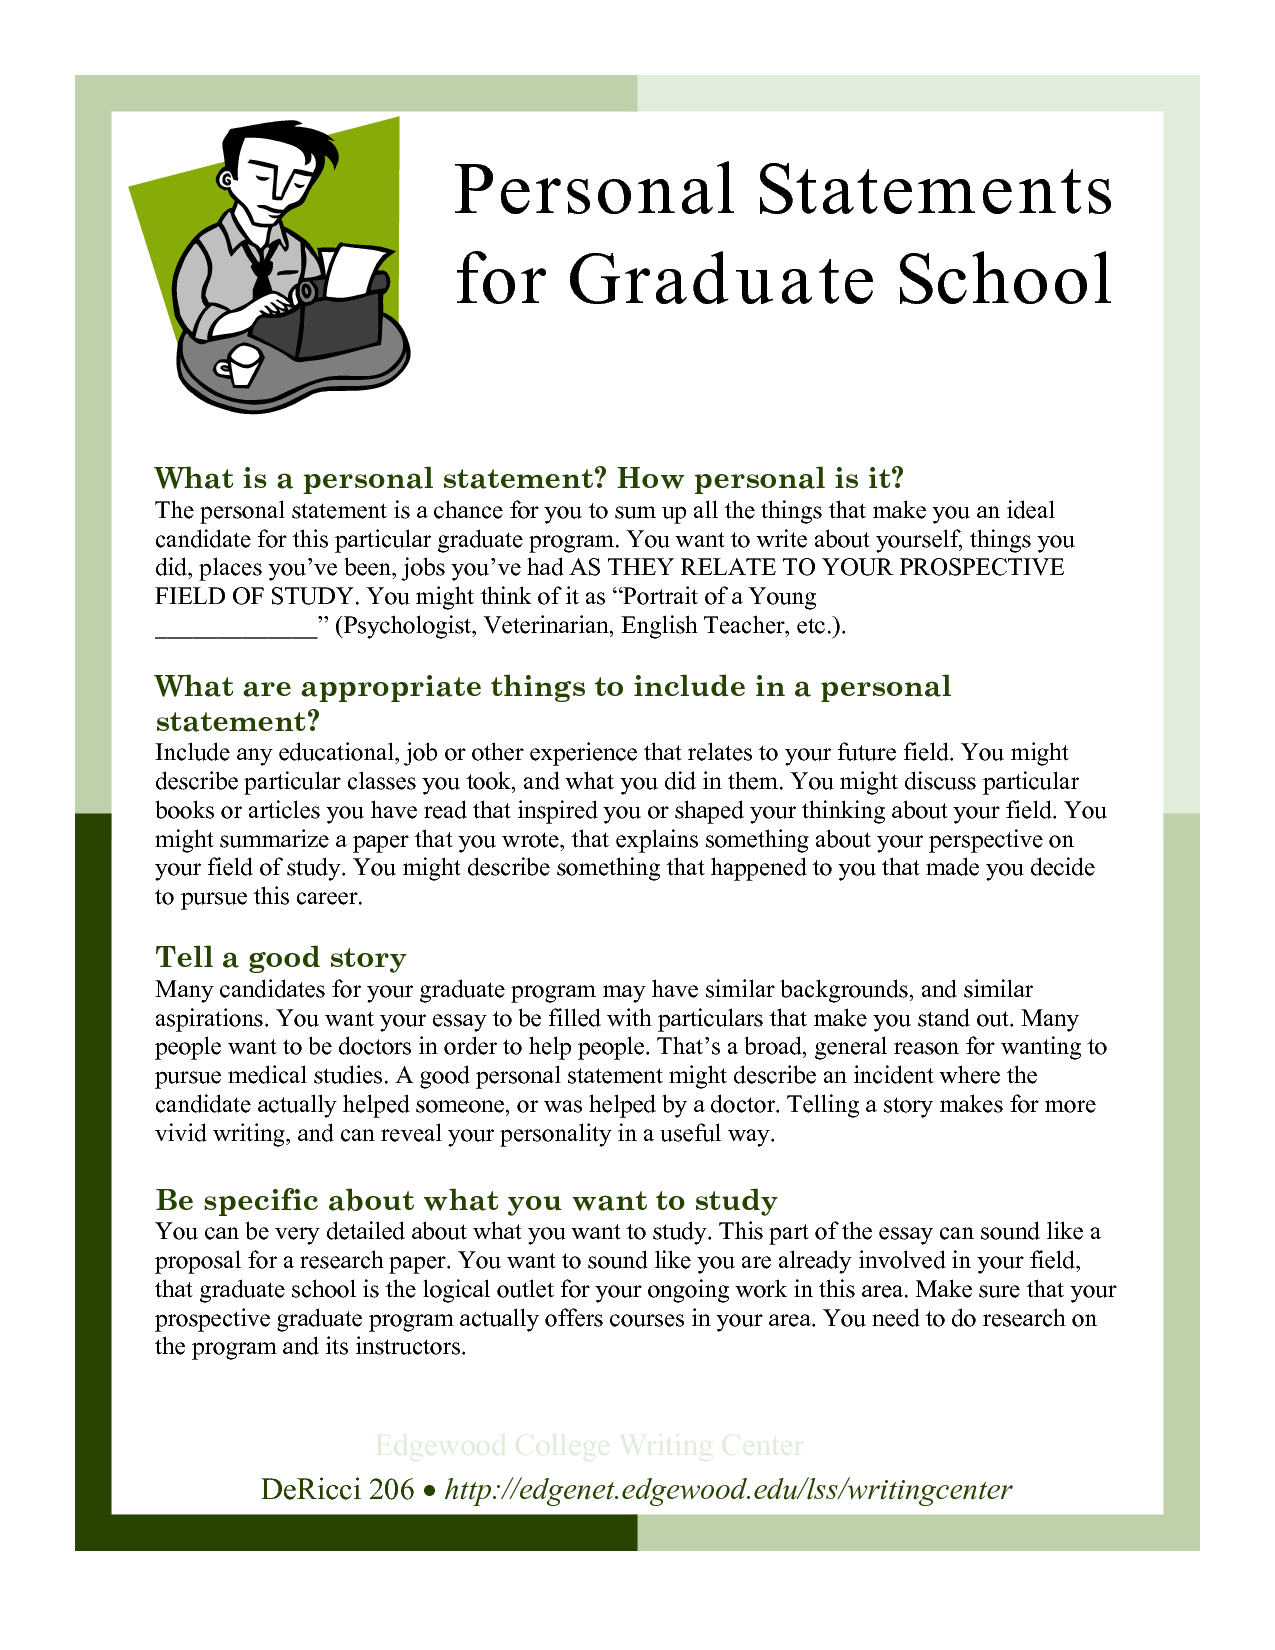 sample personal statements graduate school personal statements for graduate school - Graduate School Essays Examples